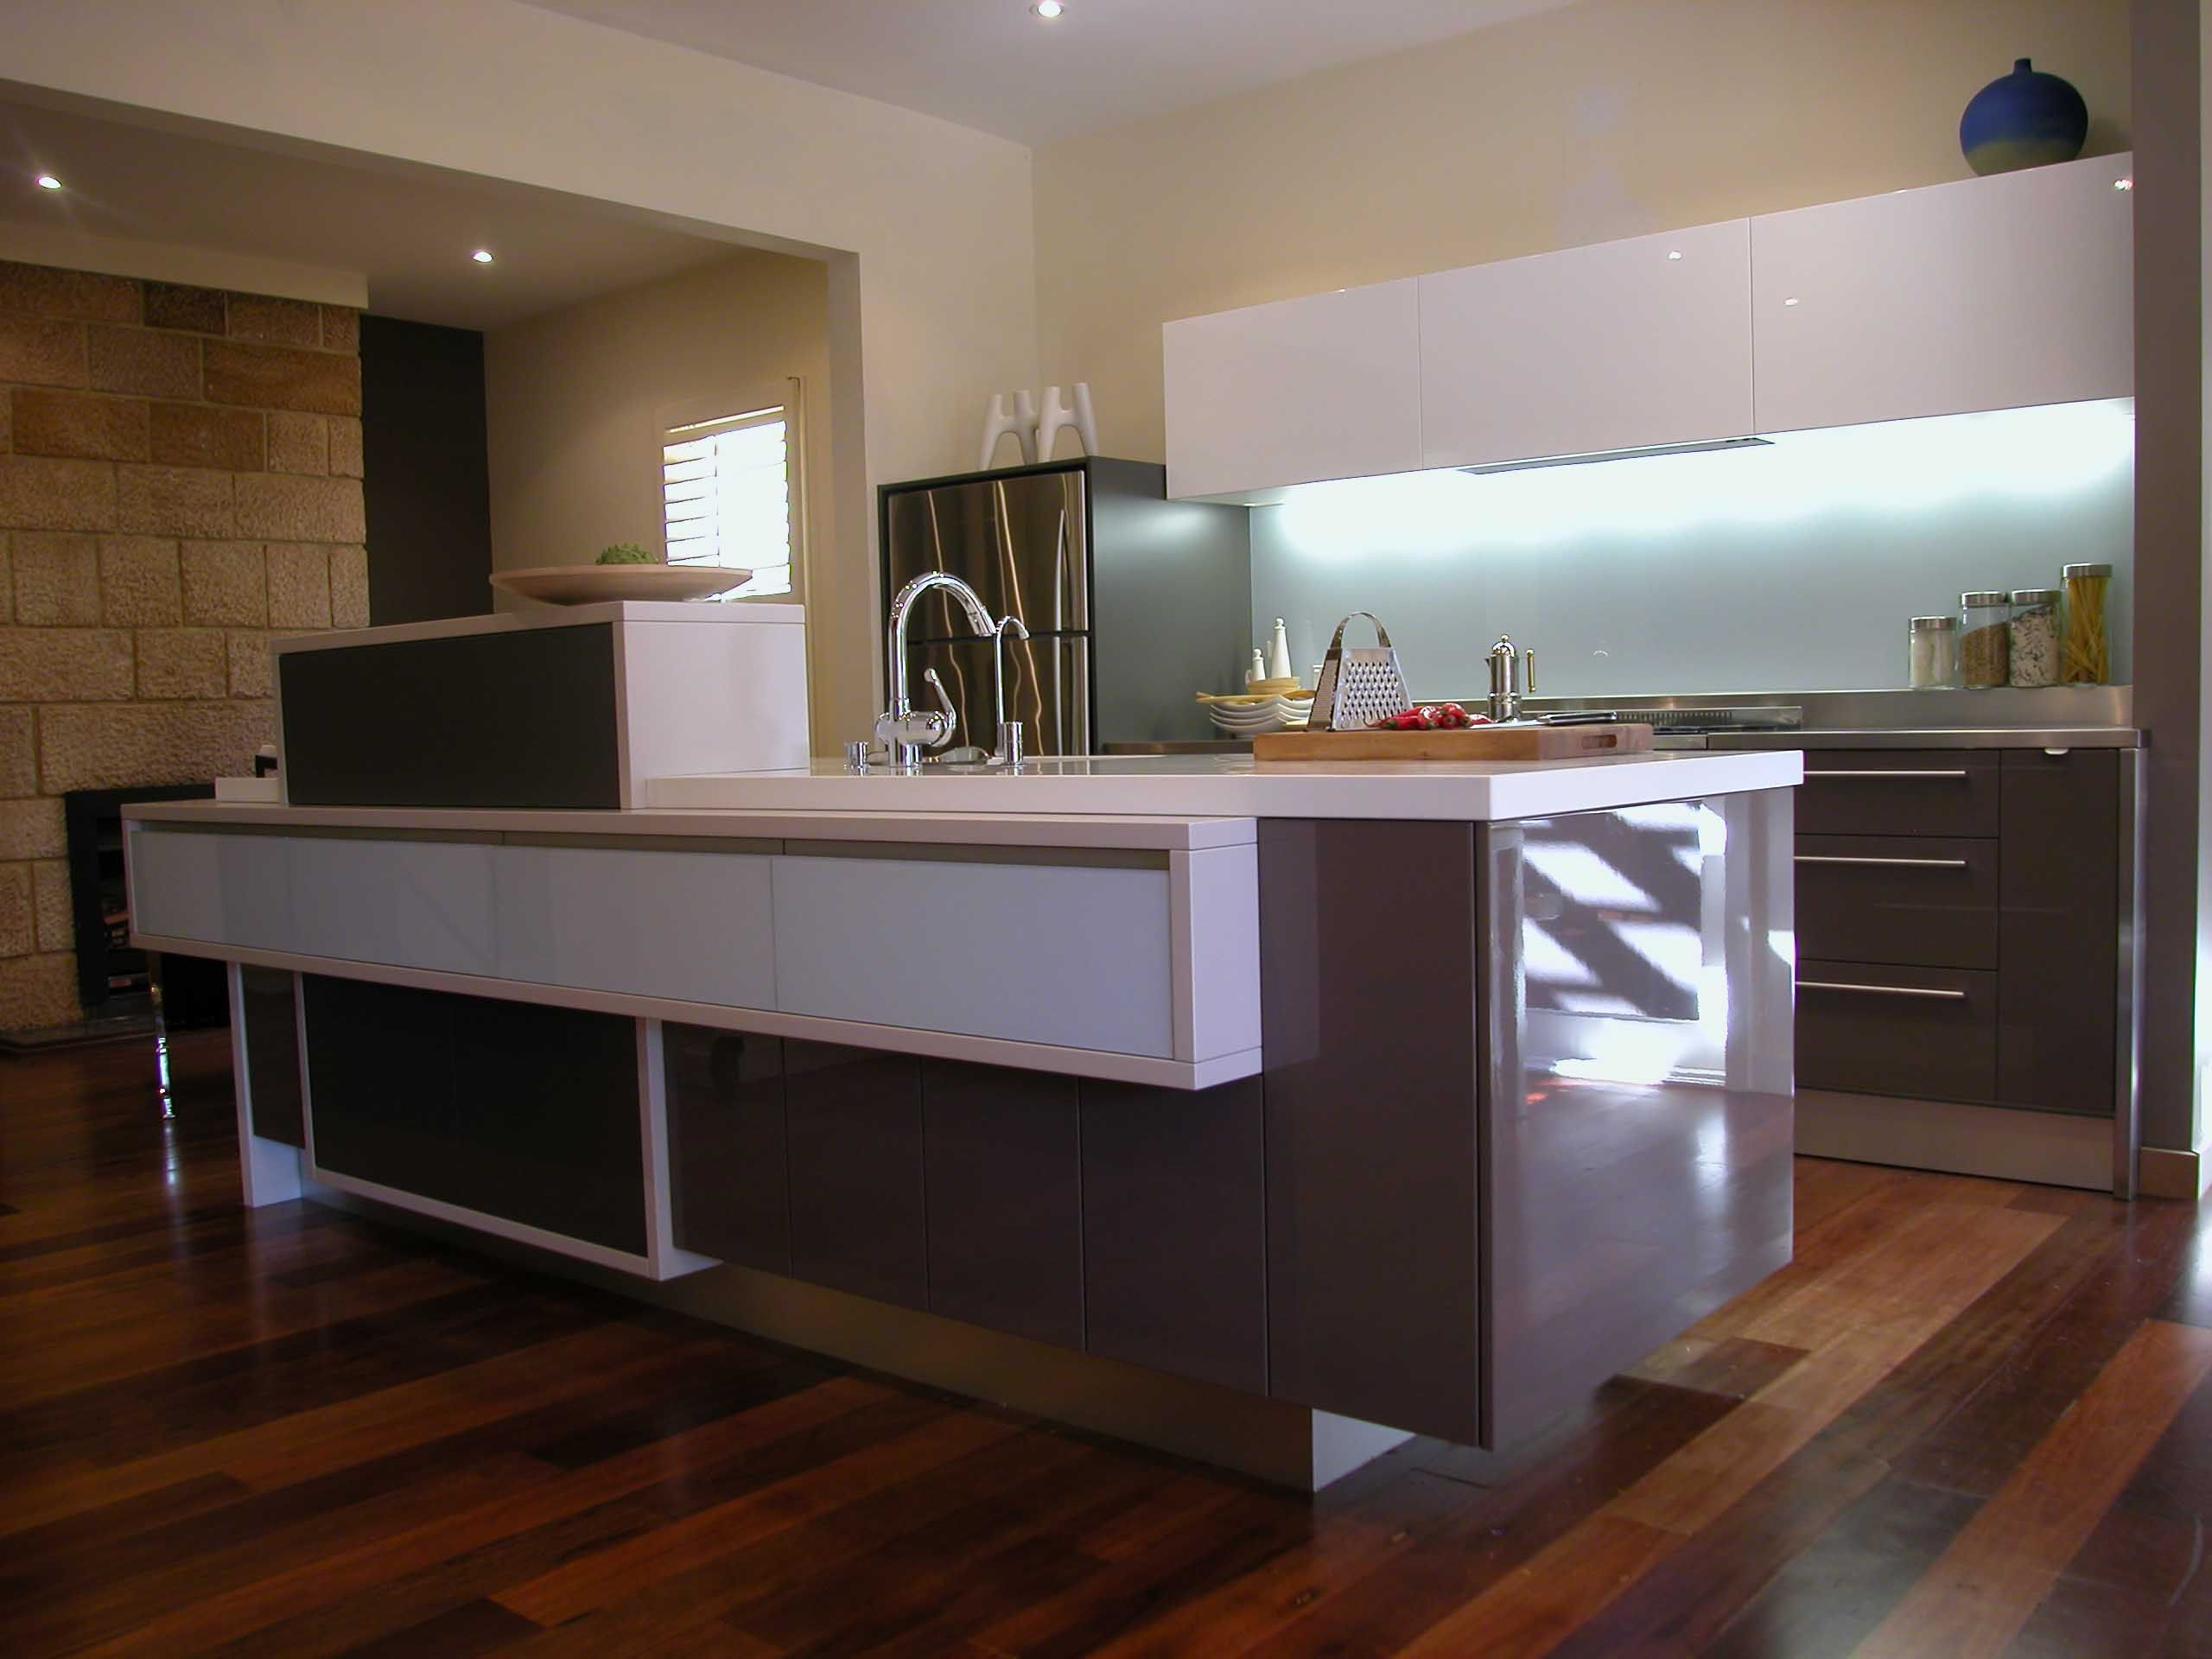 One Wall Kitchens Minosa Kitchen Design Only 12m2 But Has It All Kitchens